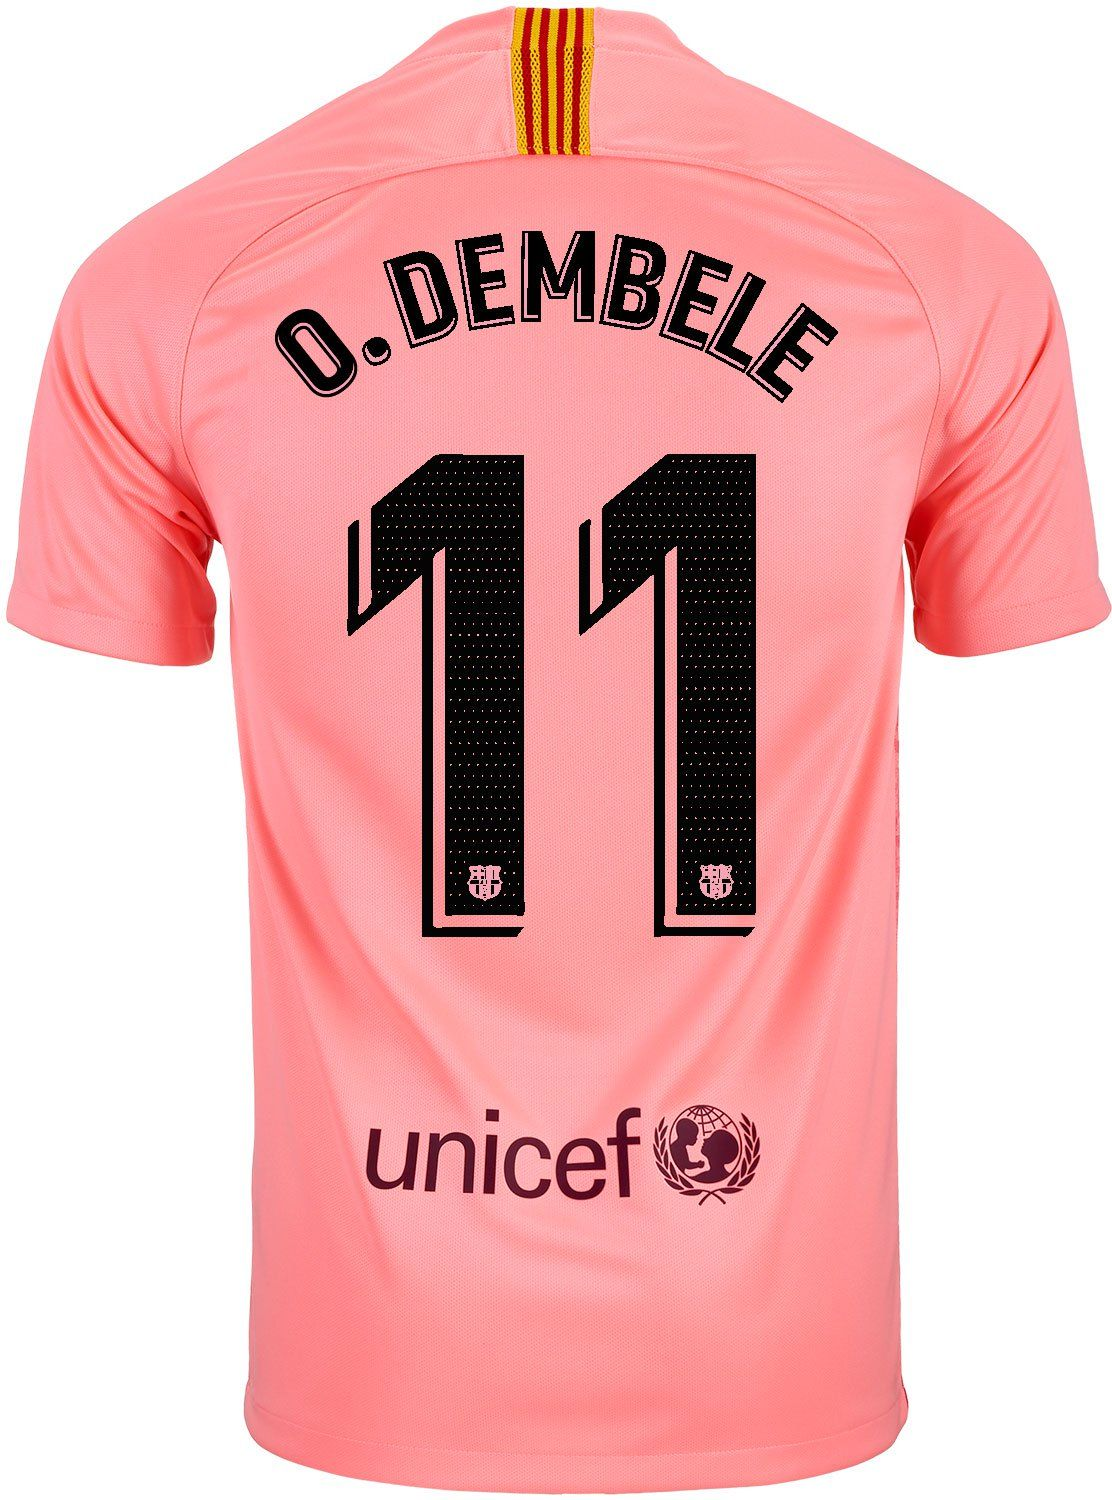 3622f2ba9 Shop for this 2018/19 Nike FC Barcelona Dembele 3rd Jersey today from  SoccerPro